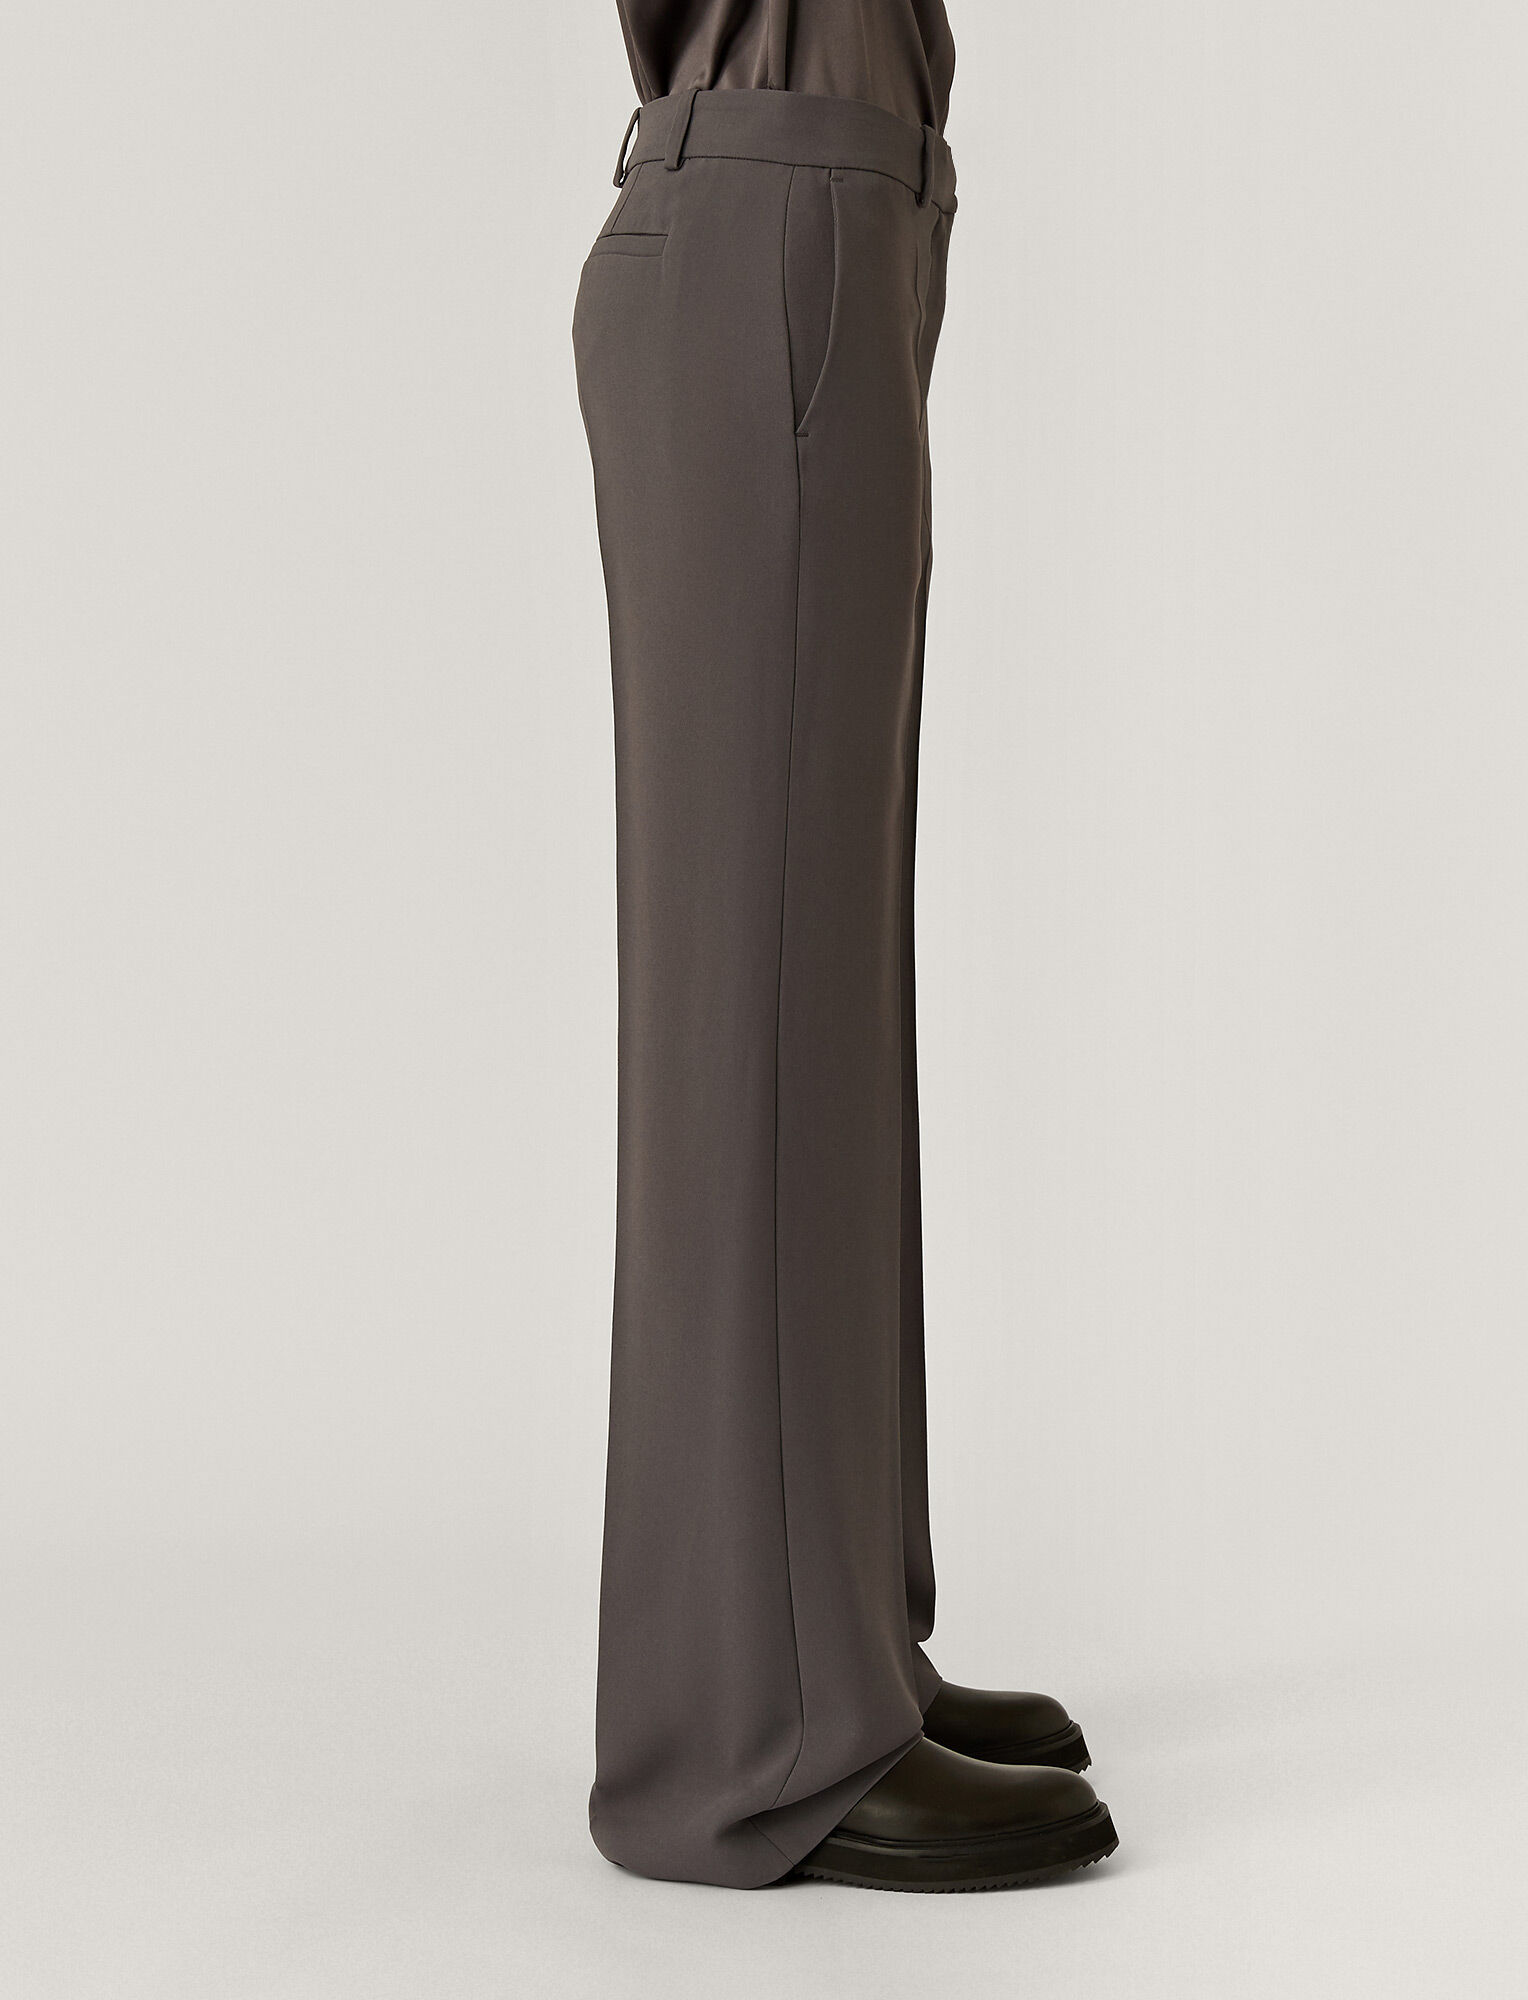 Joseph, New Cady Morissey Trousers, in CAPERS